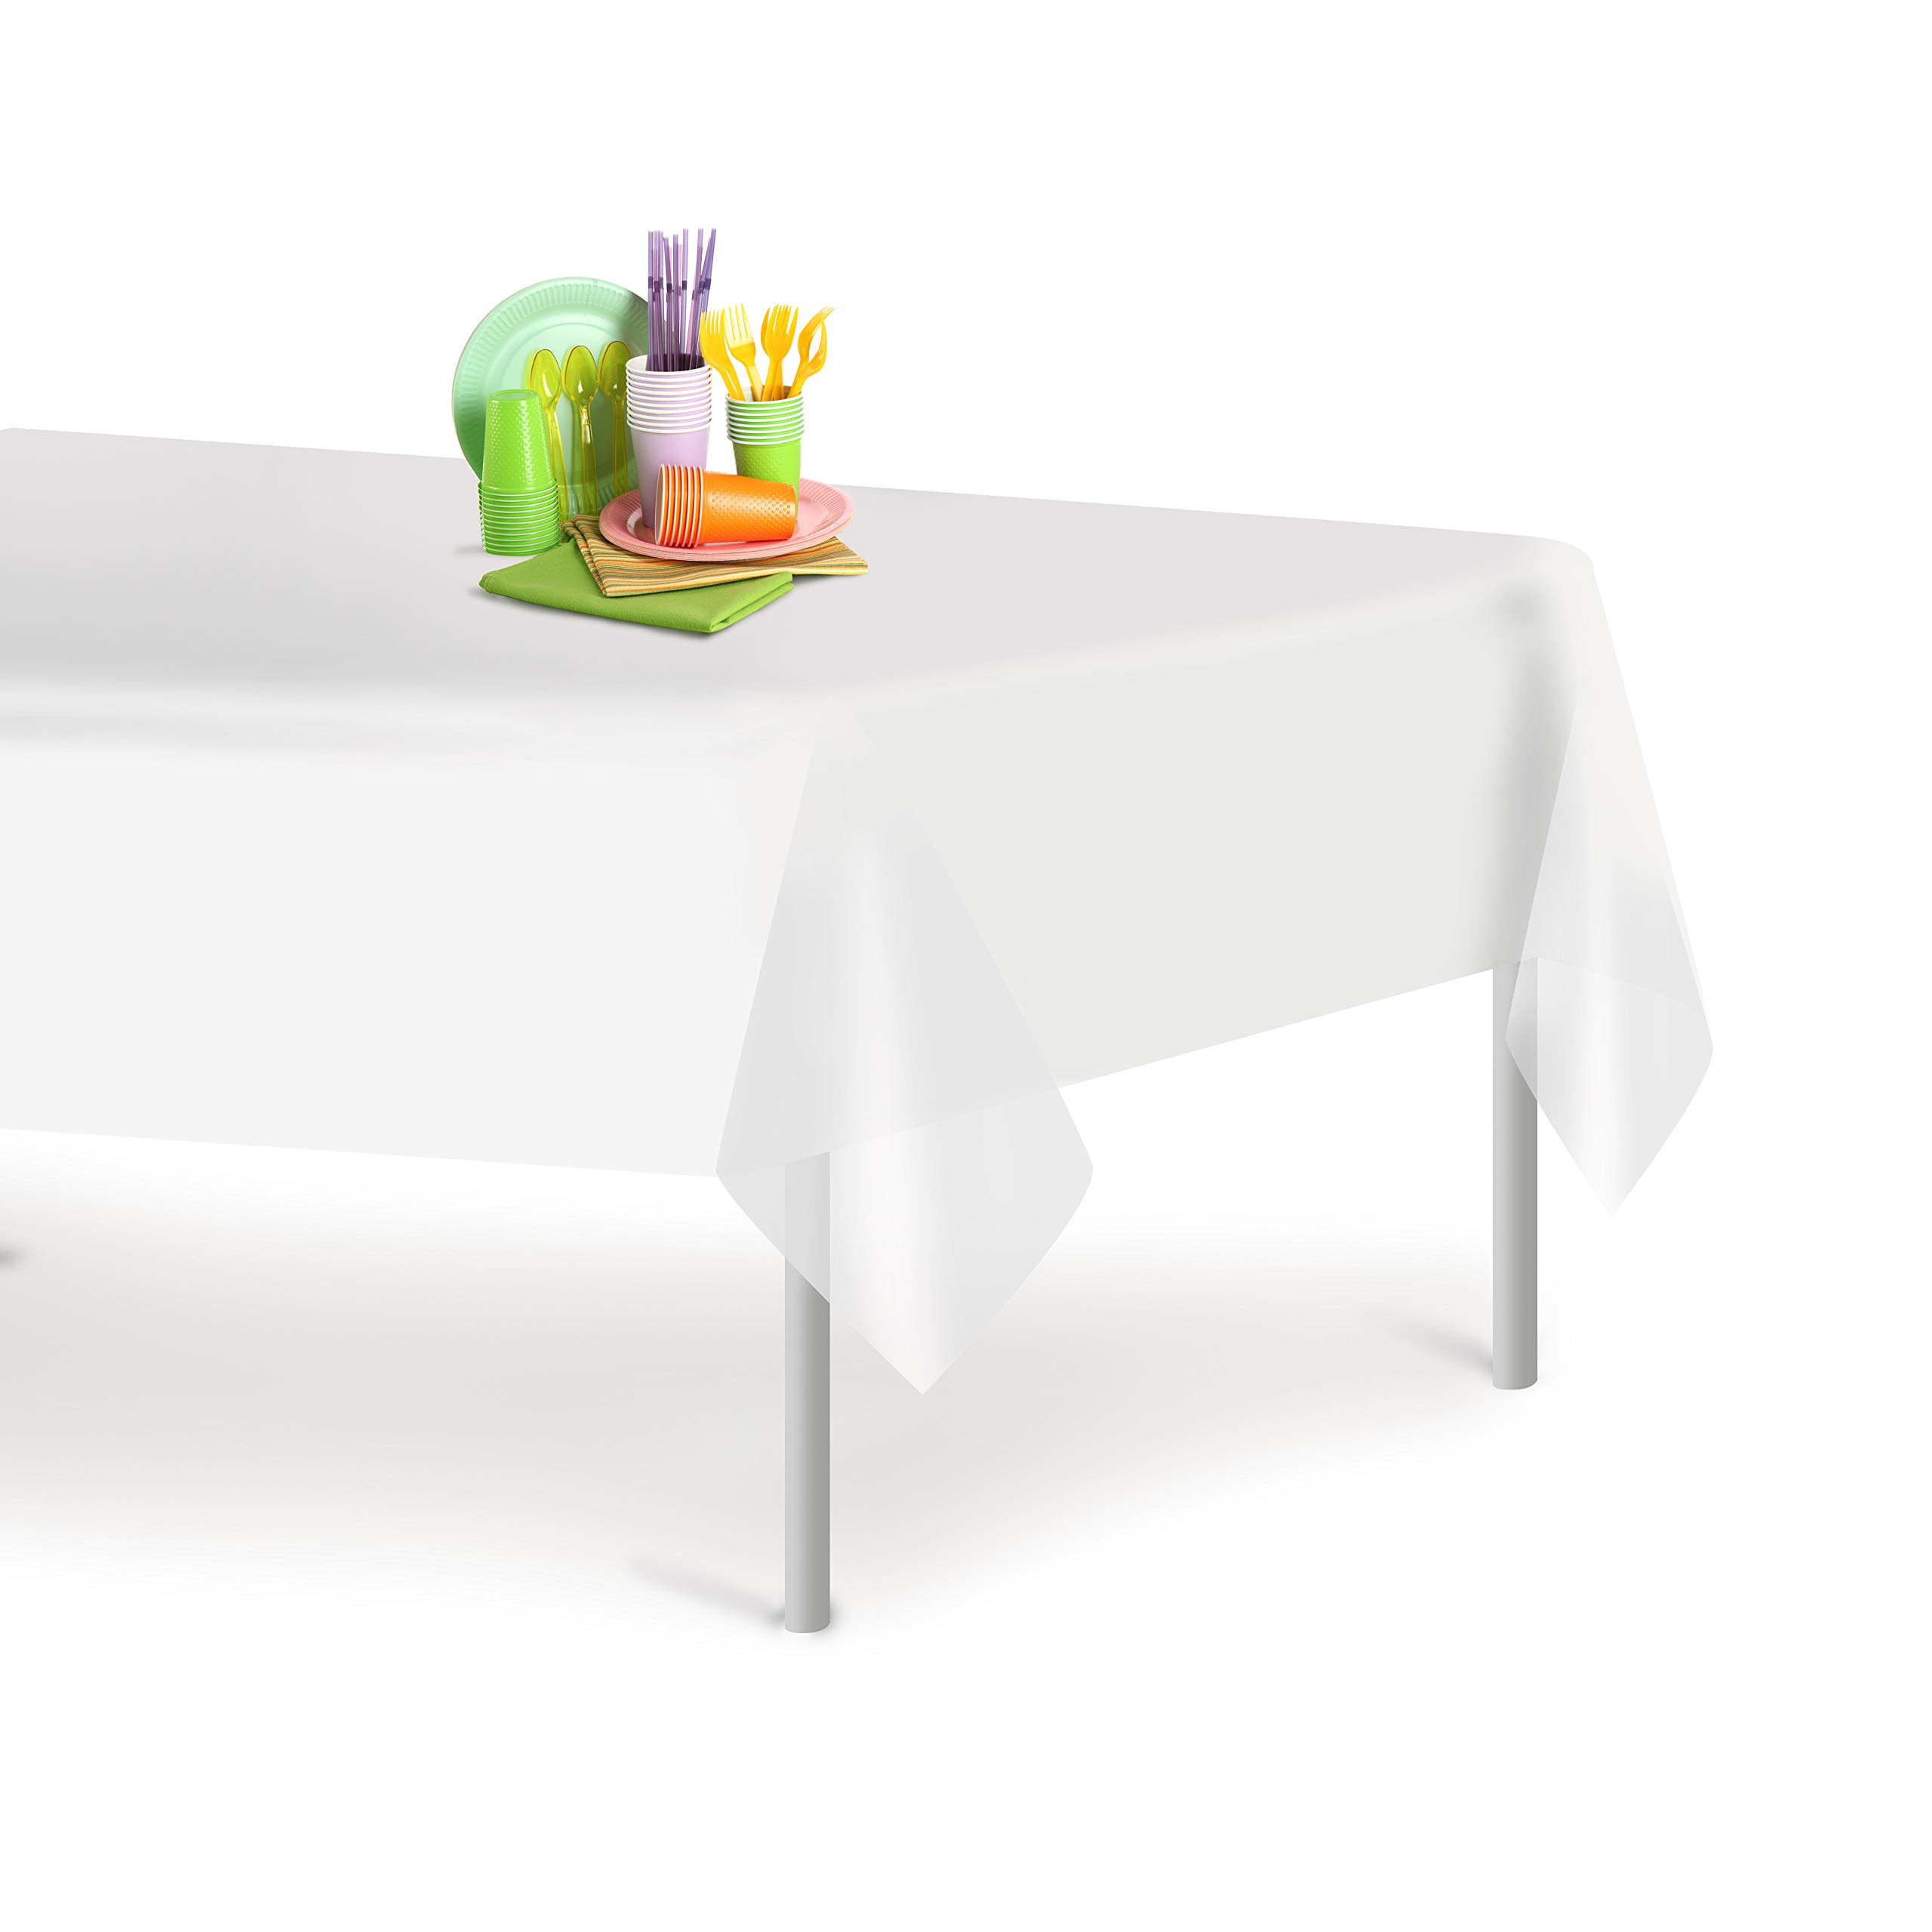 White 6 Pack Premium Disposable Plastic Tablecloth 54 Inch. x 108 Inch. Rectangle Table Cover By Grandipity